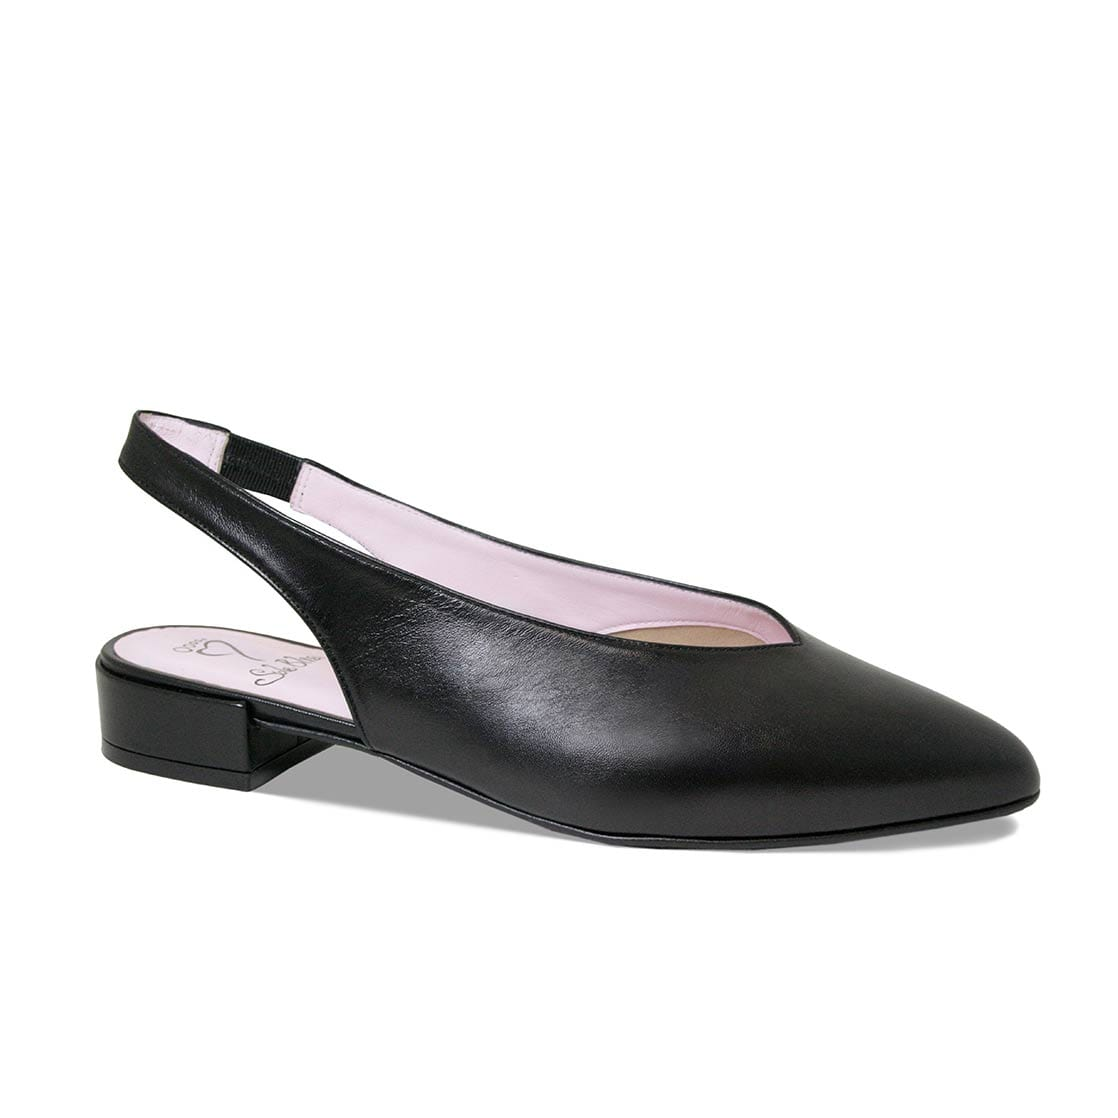 Black Leather Flat Sling-Back Shoes